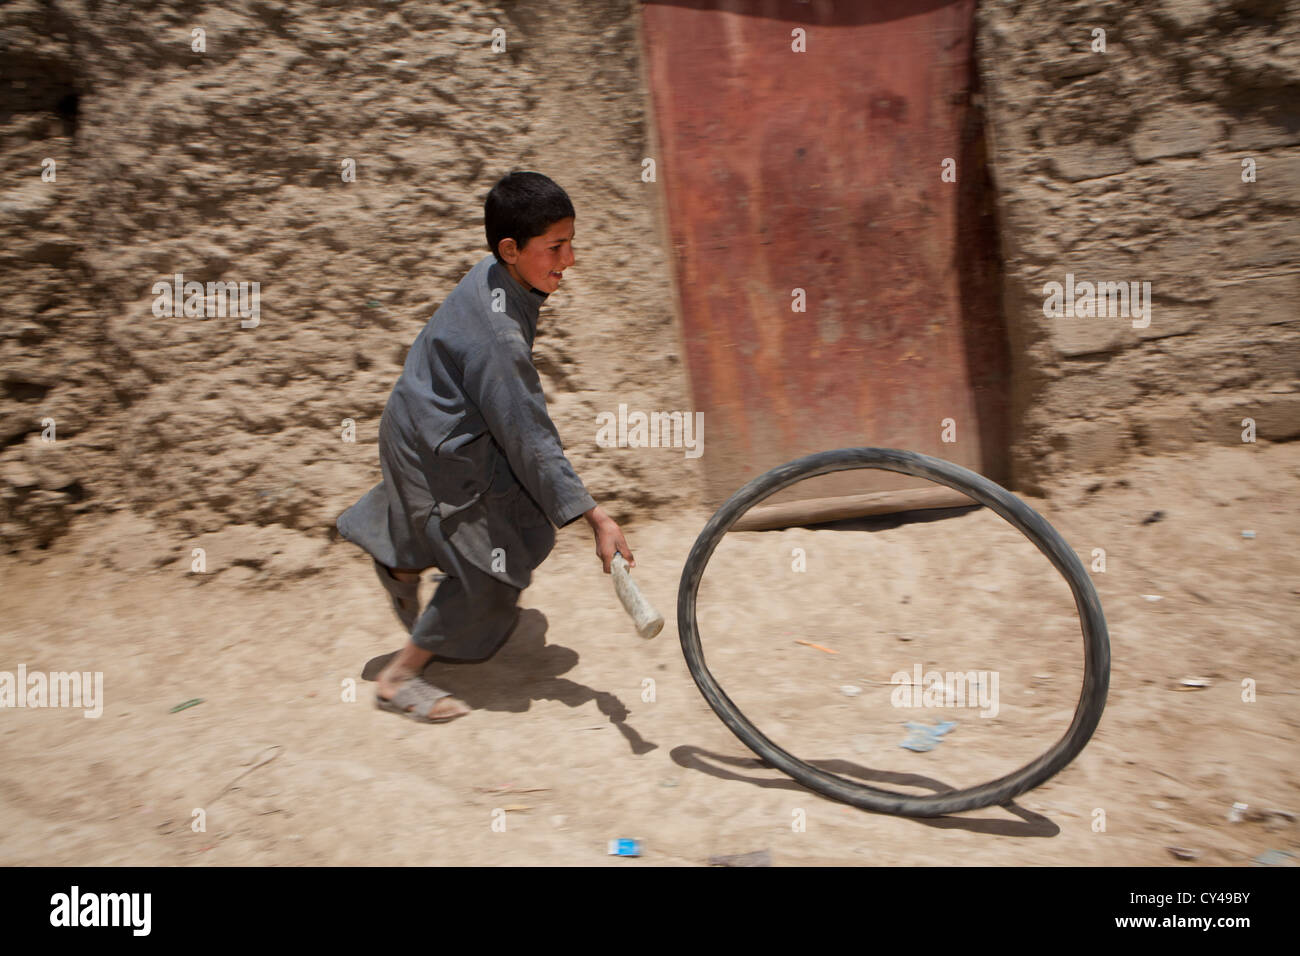 Afghan children playing in a slum in Kabul - Stock Image